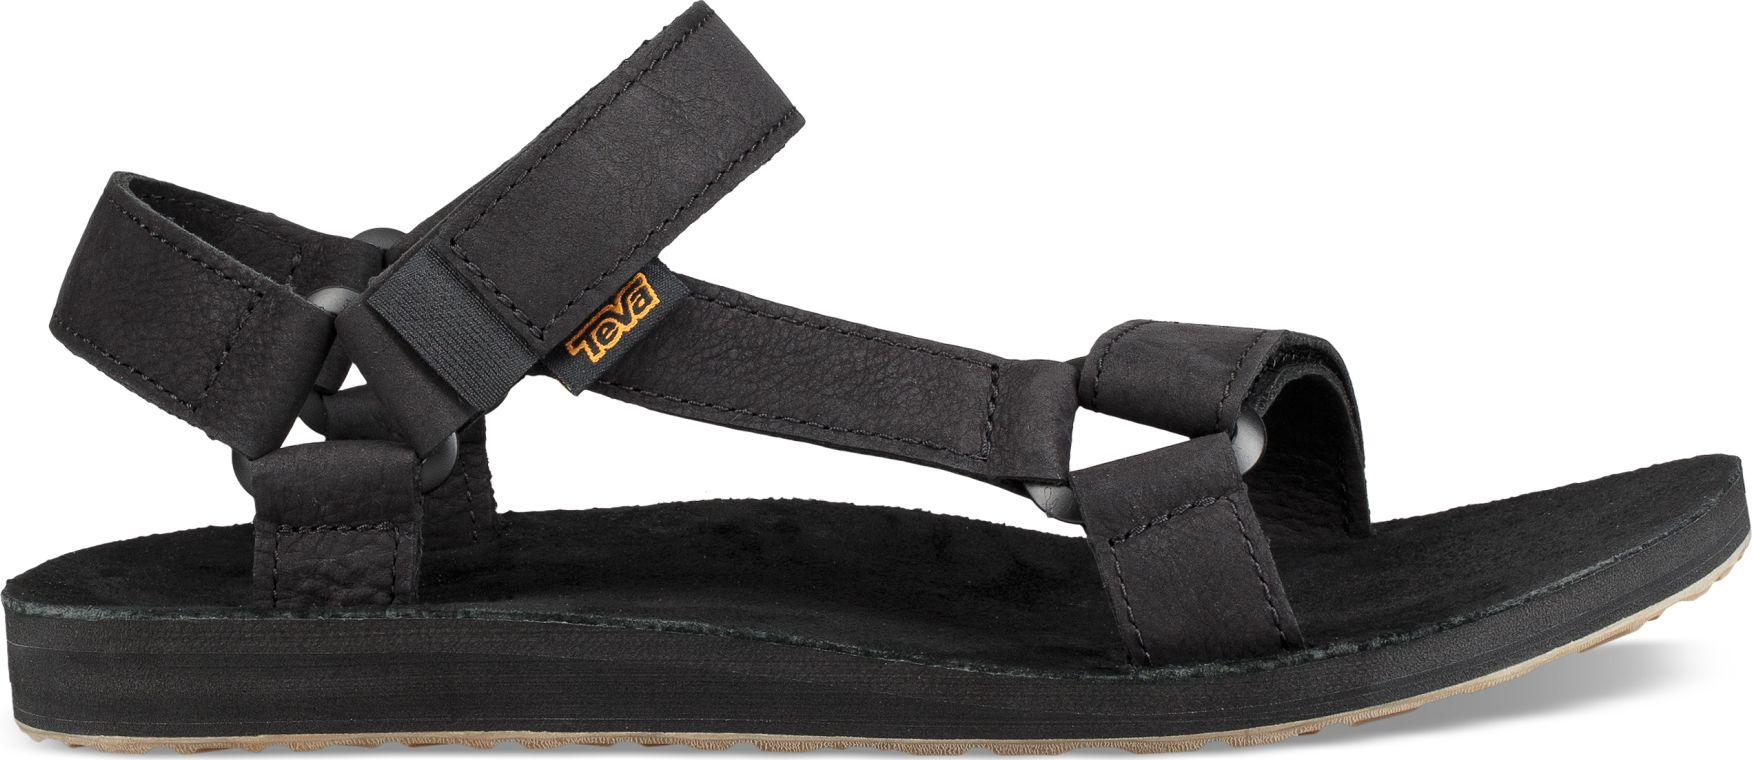 Teva Original Universal Leather Men's Black 43